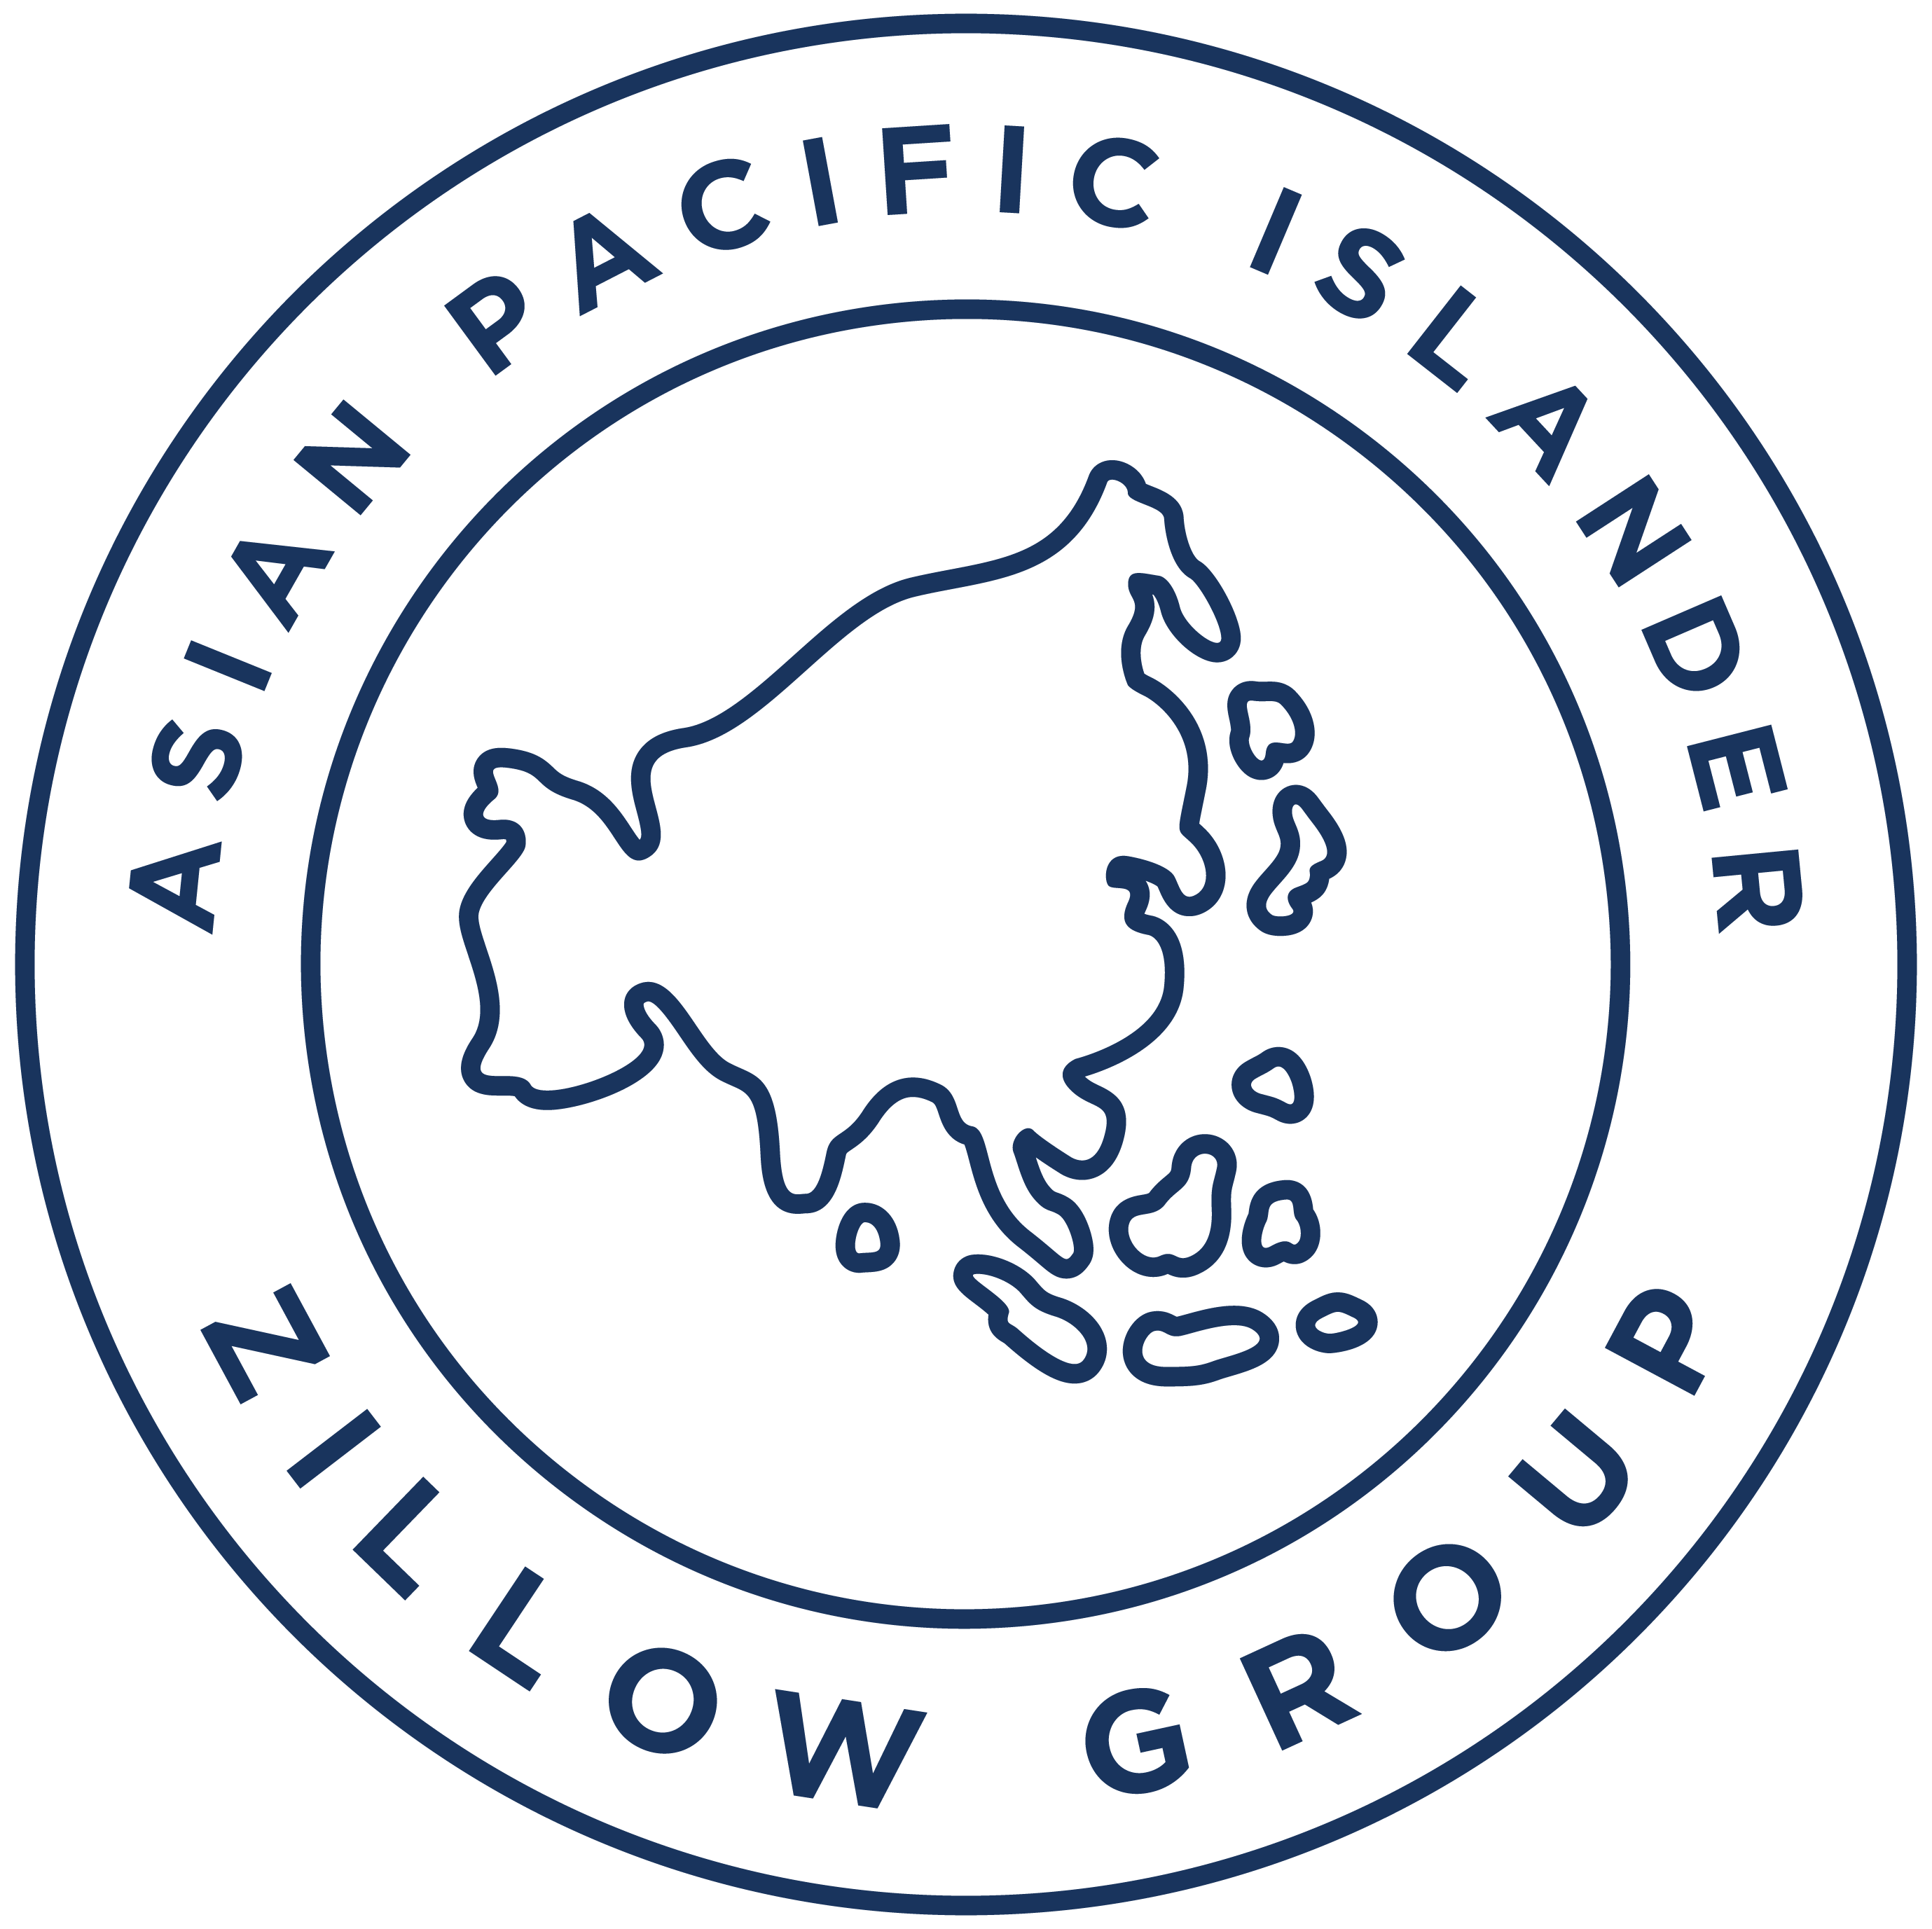 Asian Pacific Islander Network